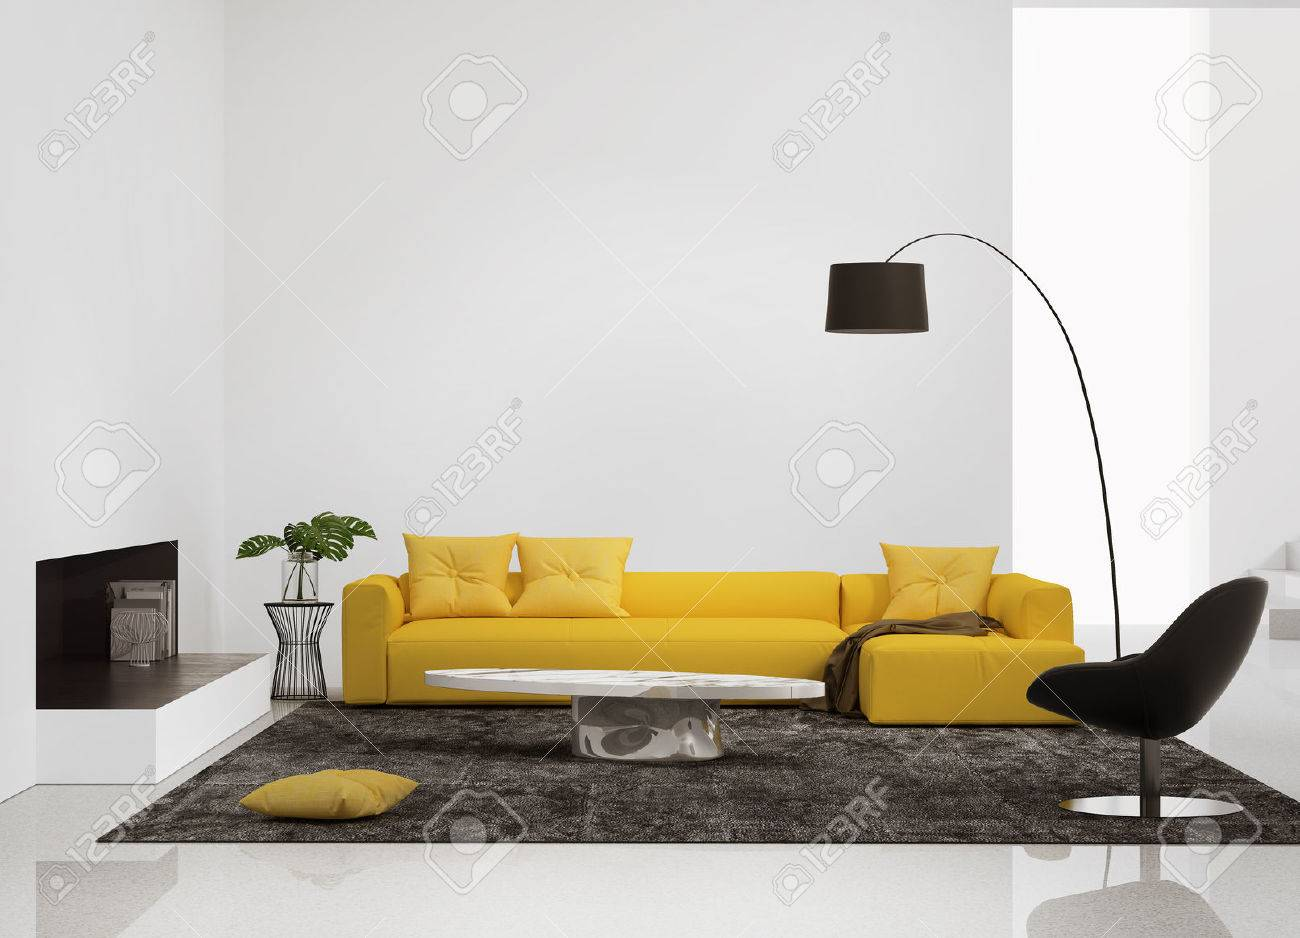 Modern interior with a yellow sofa in the living room and a leather..